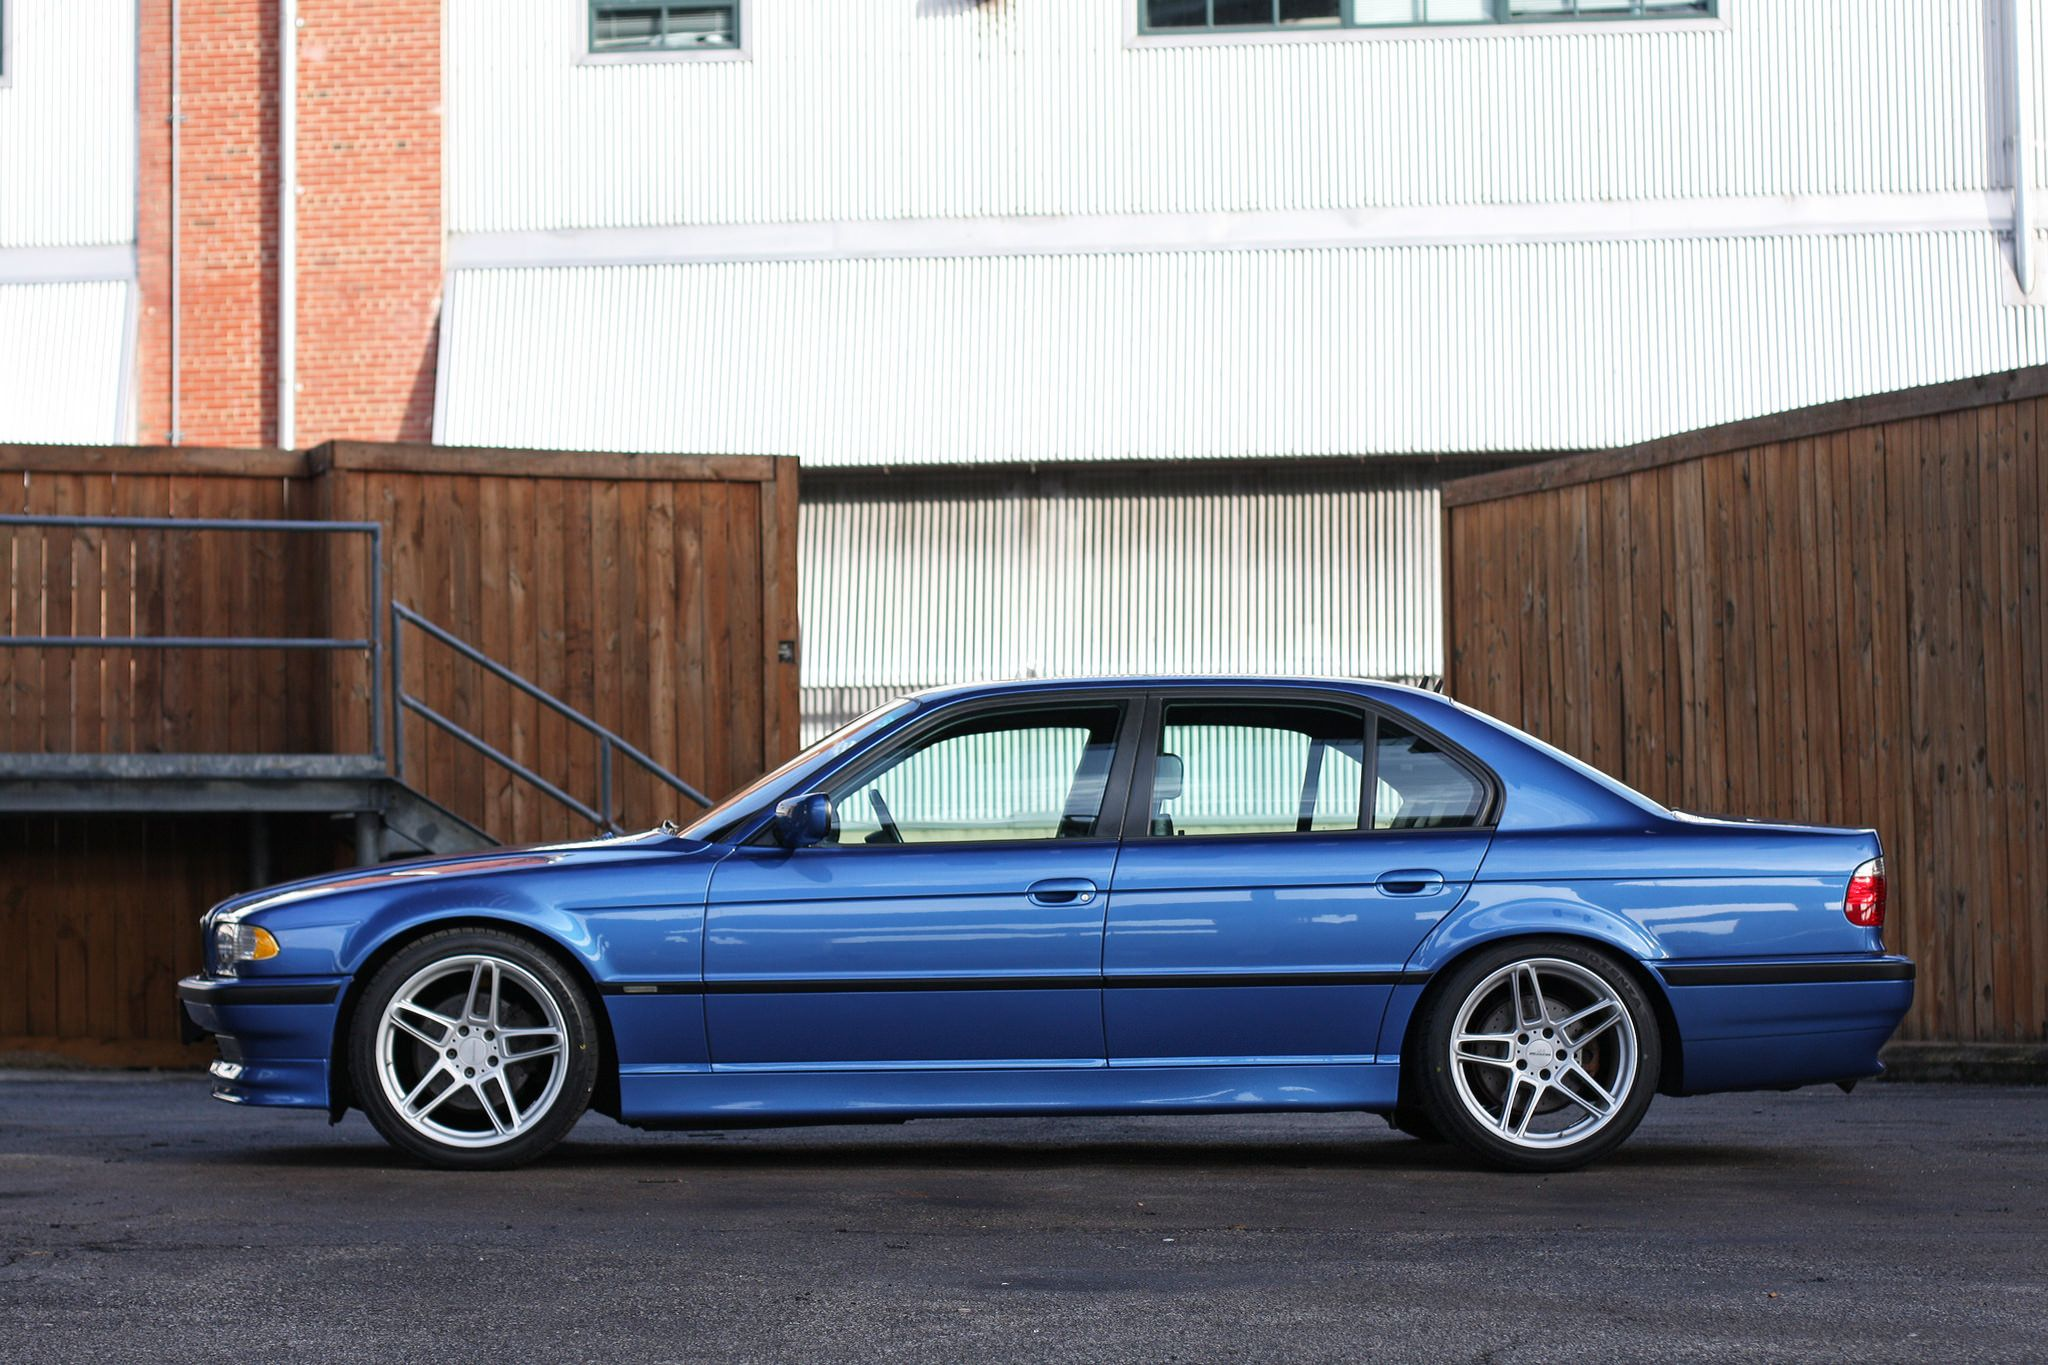 Bimmerforums the ultimate bmw forum